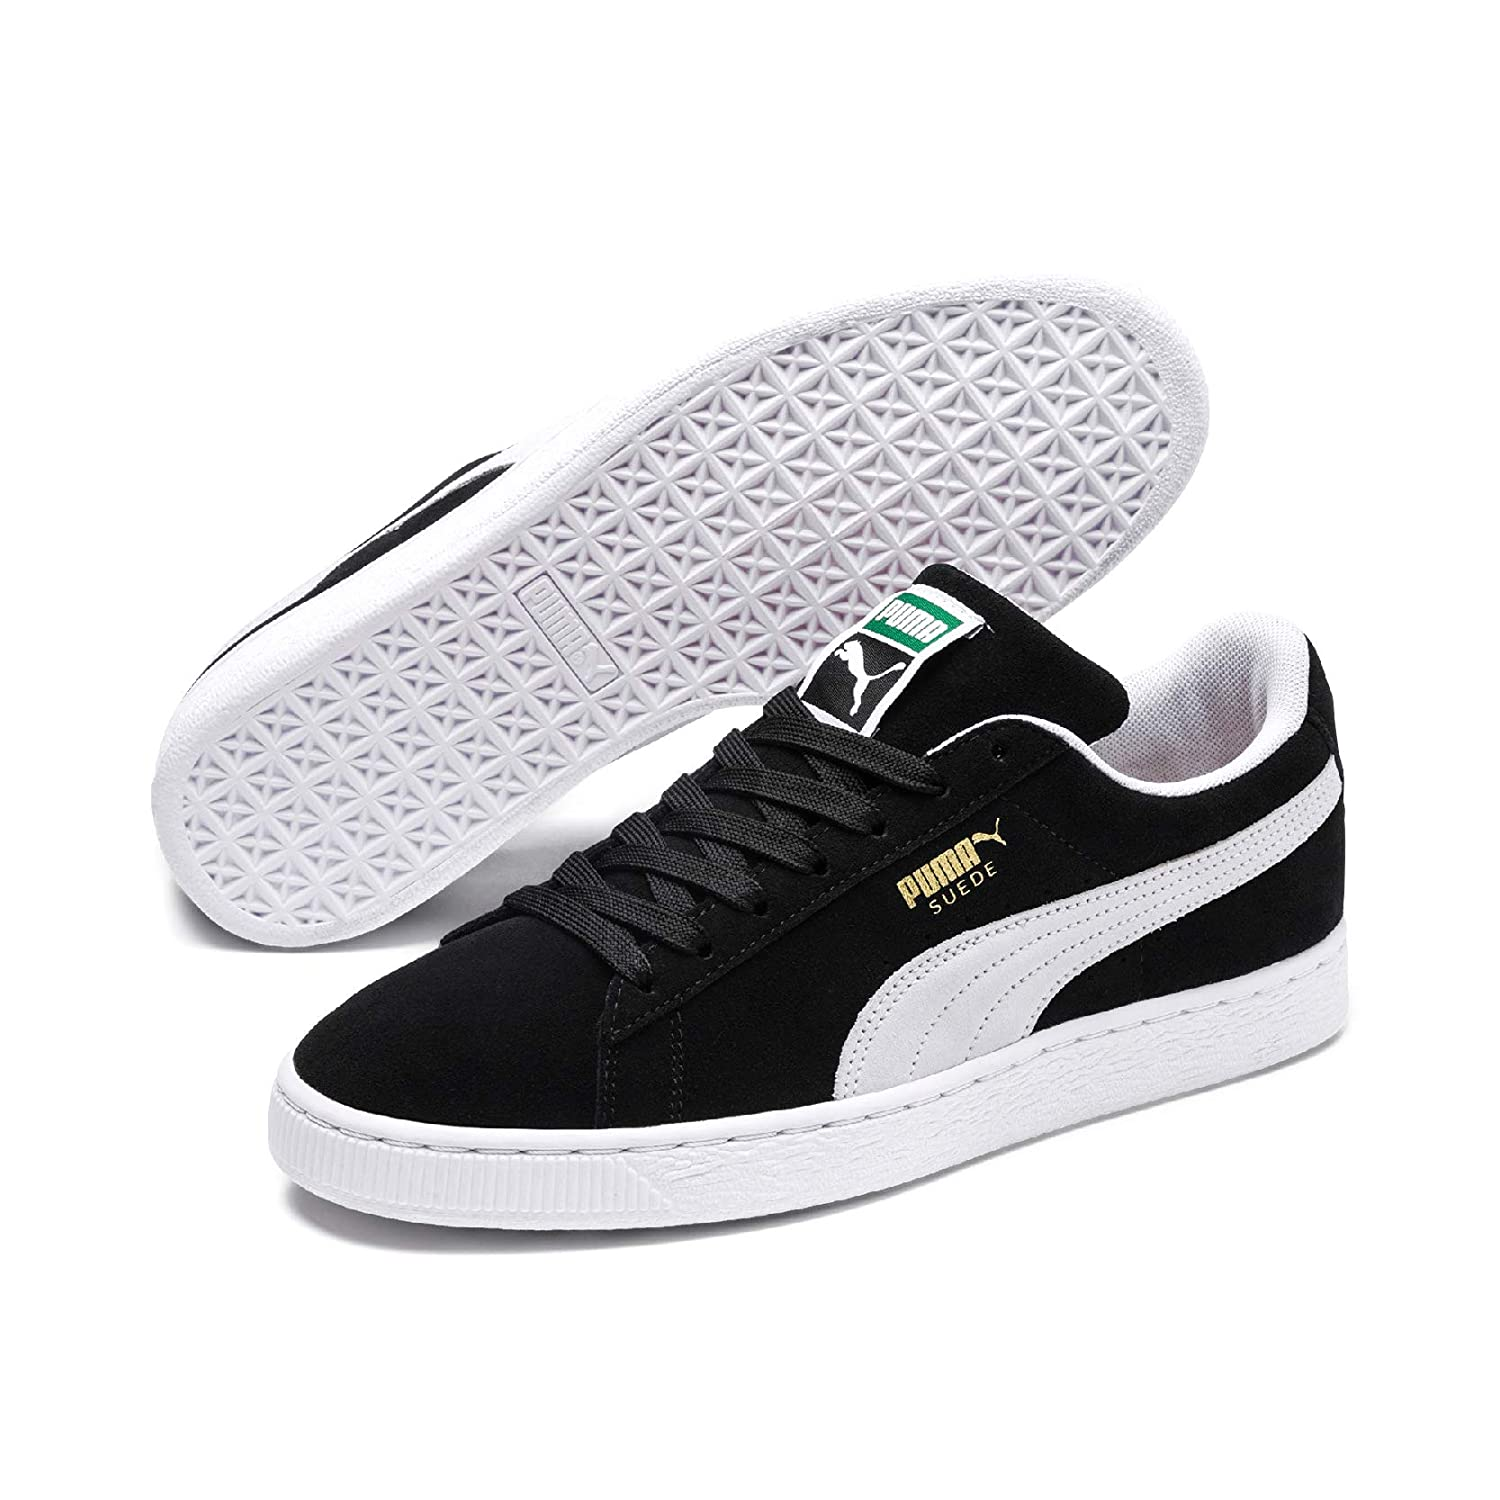 6bb02ca47a37 Amazon.com  PUMA Select Men s Suede Classic Plus Sneakers  Puma  Shoes